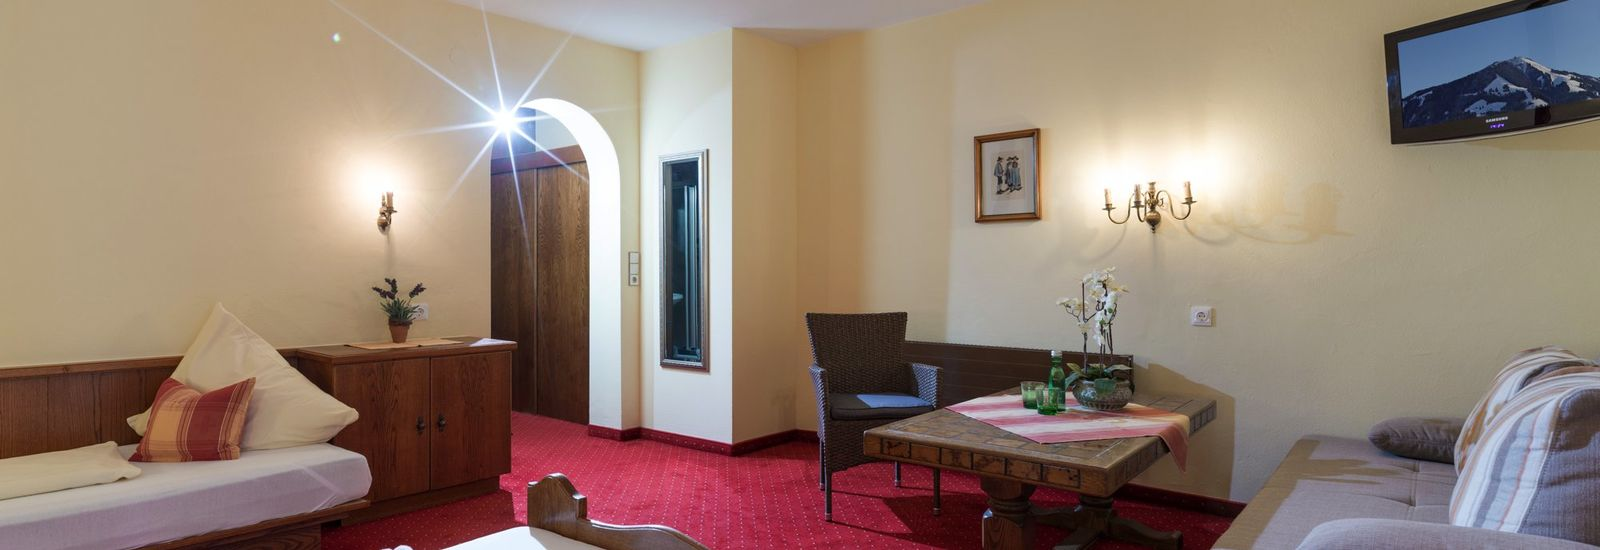 Hotel Halbpension Brixental Tirol